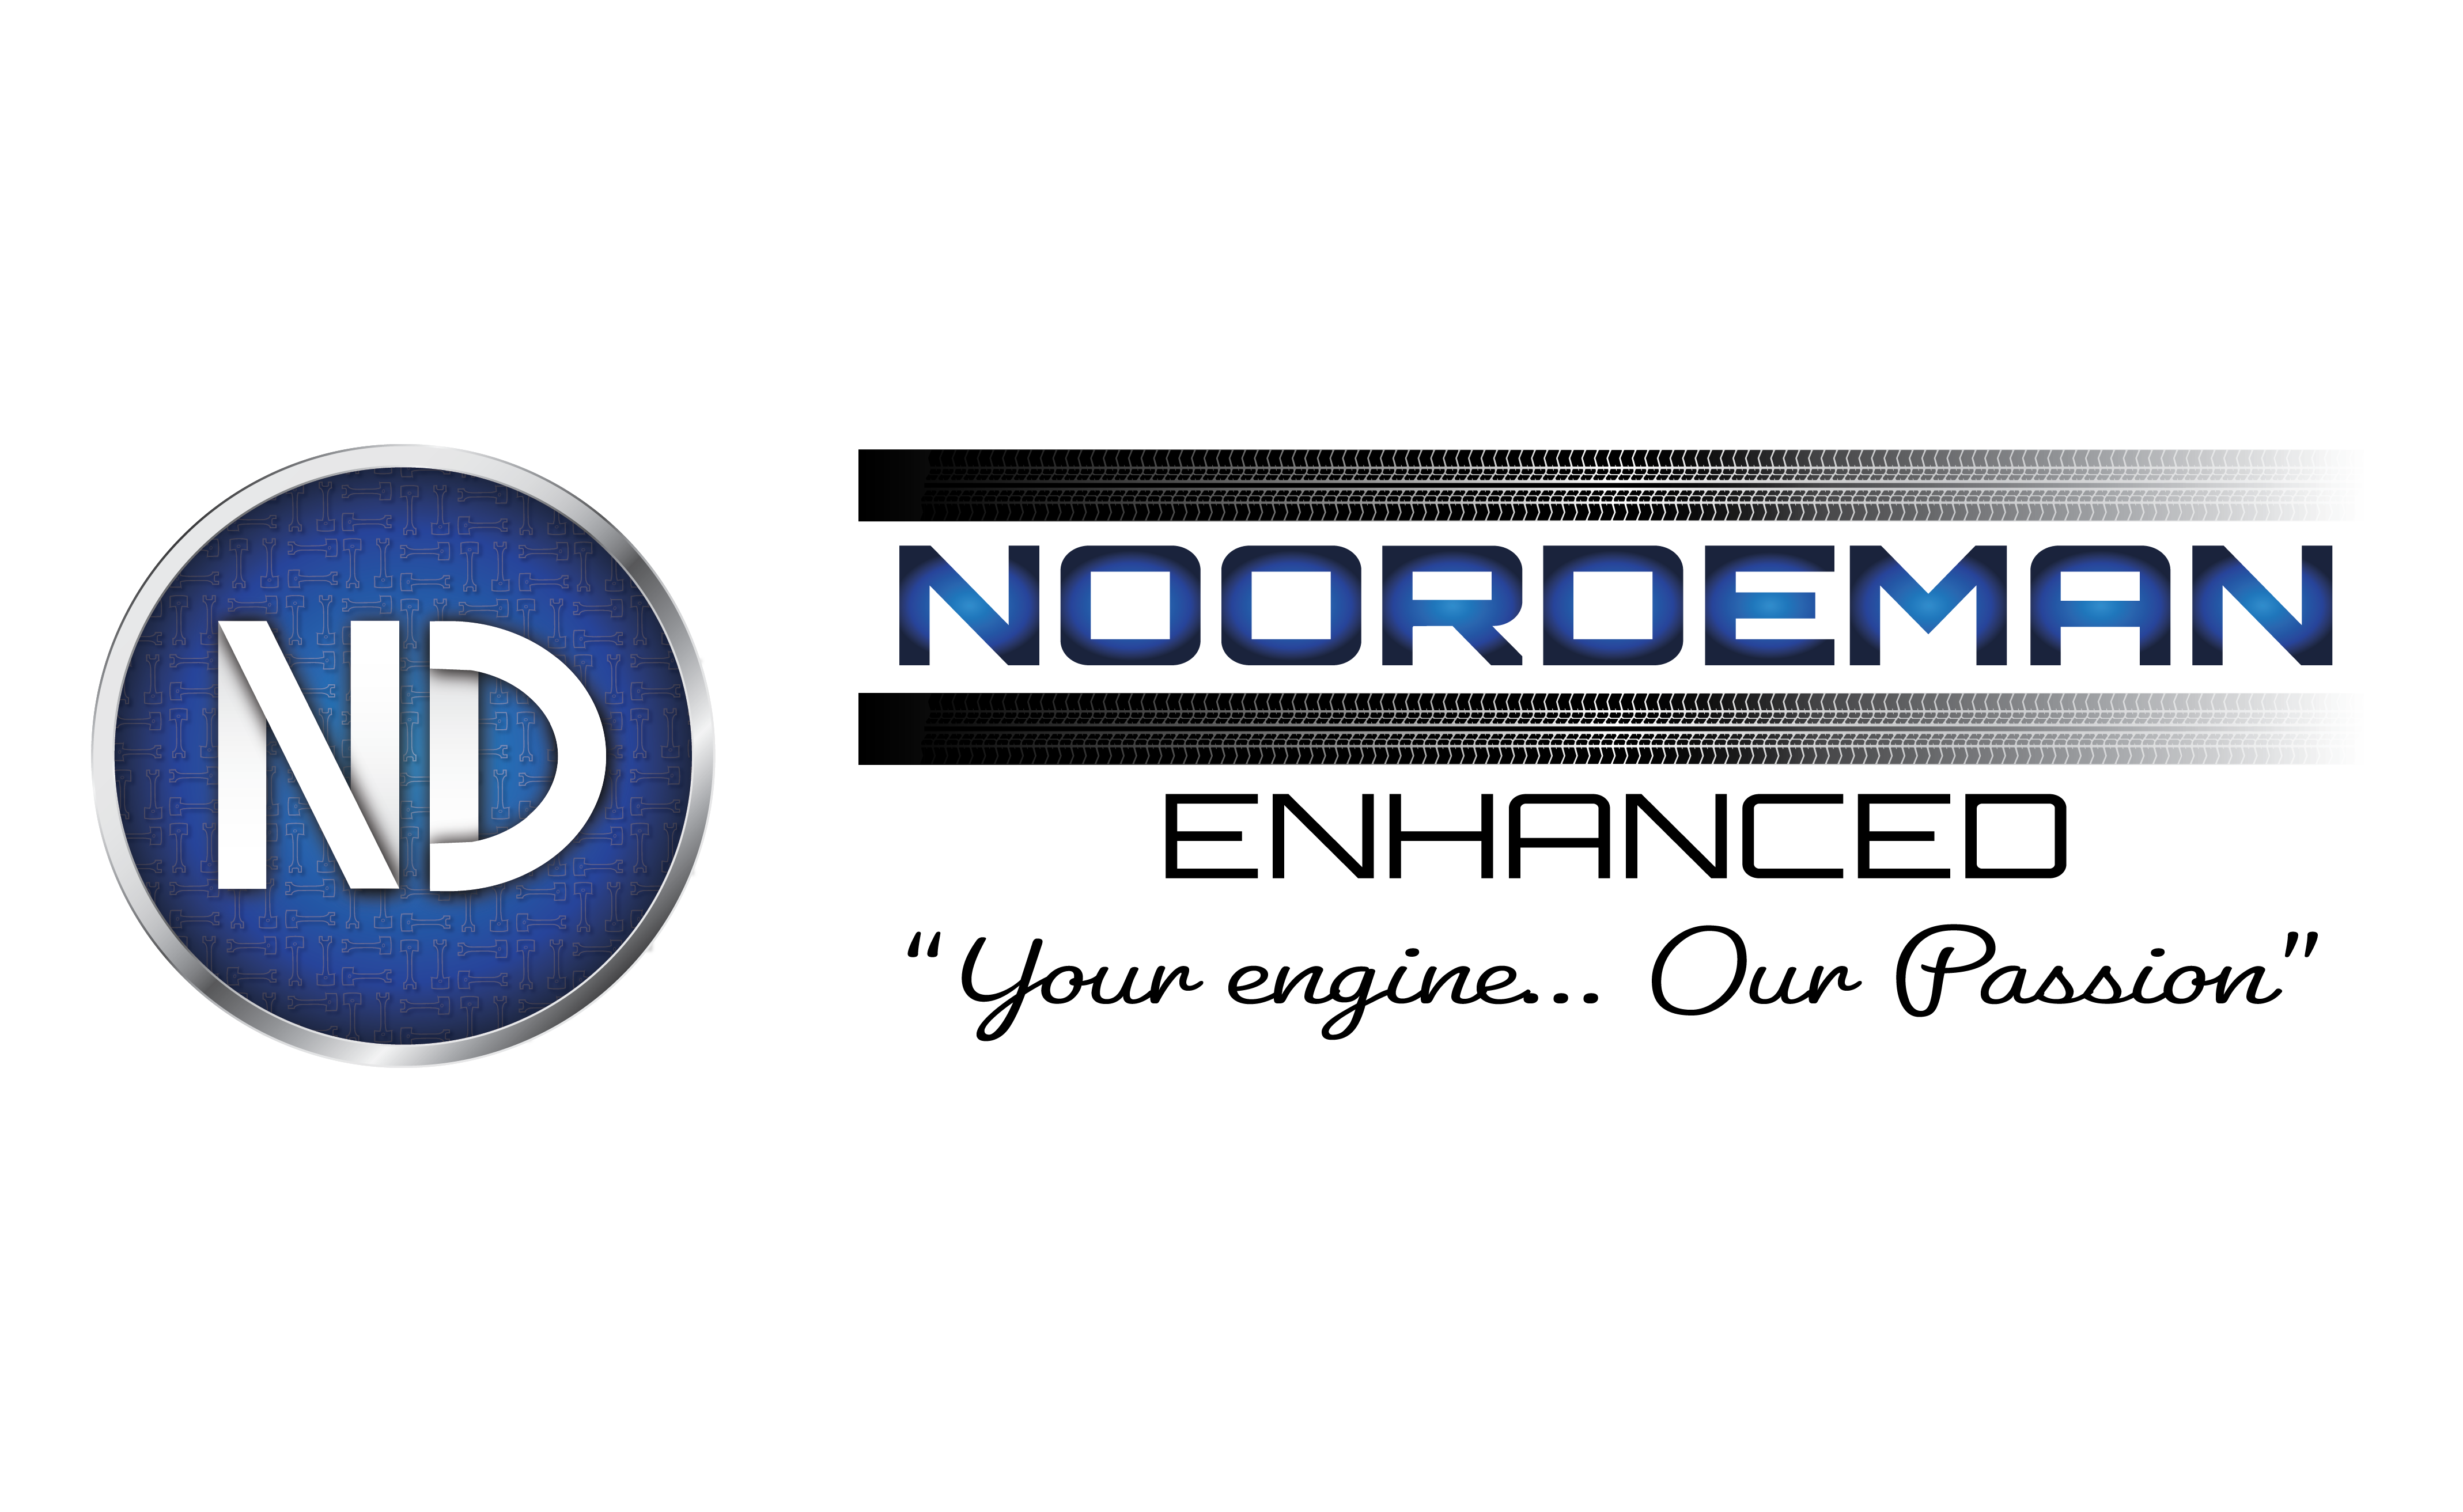 noordeman enhanced